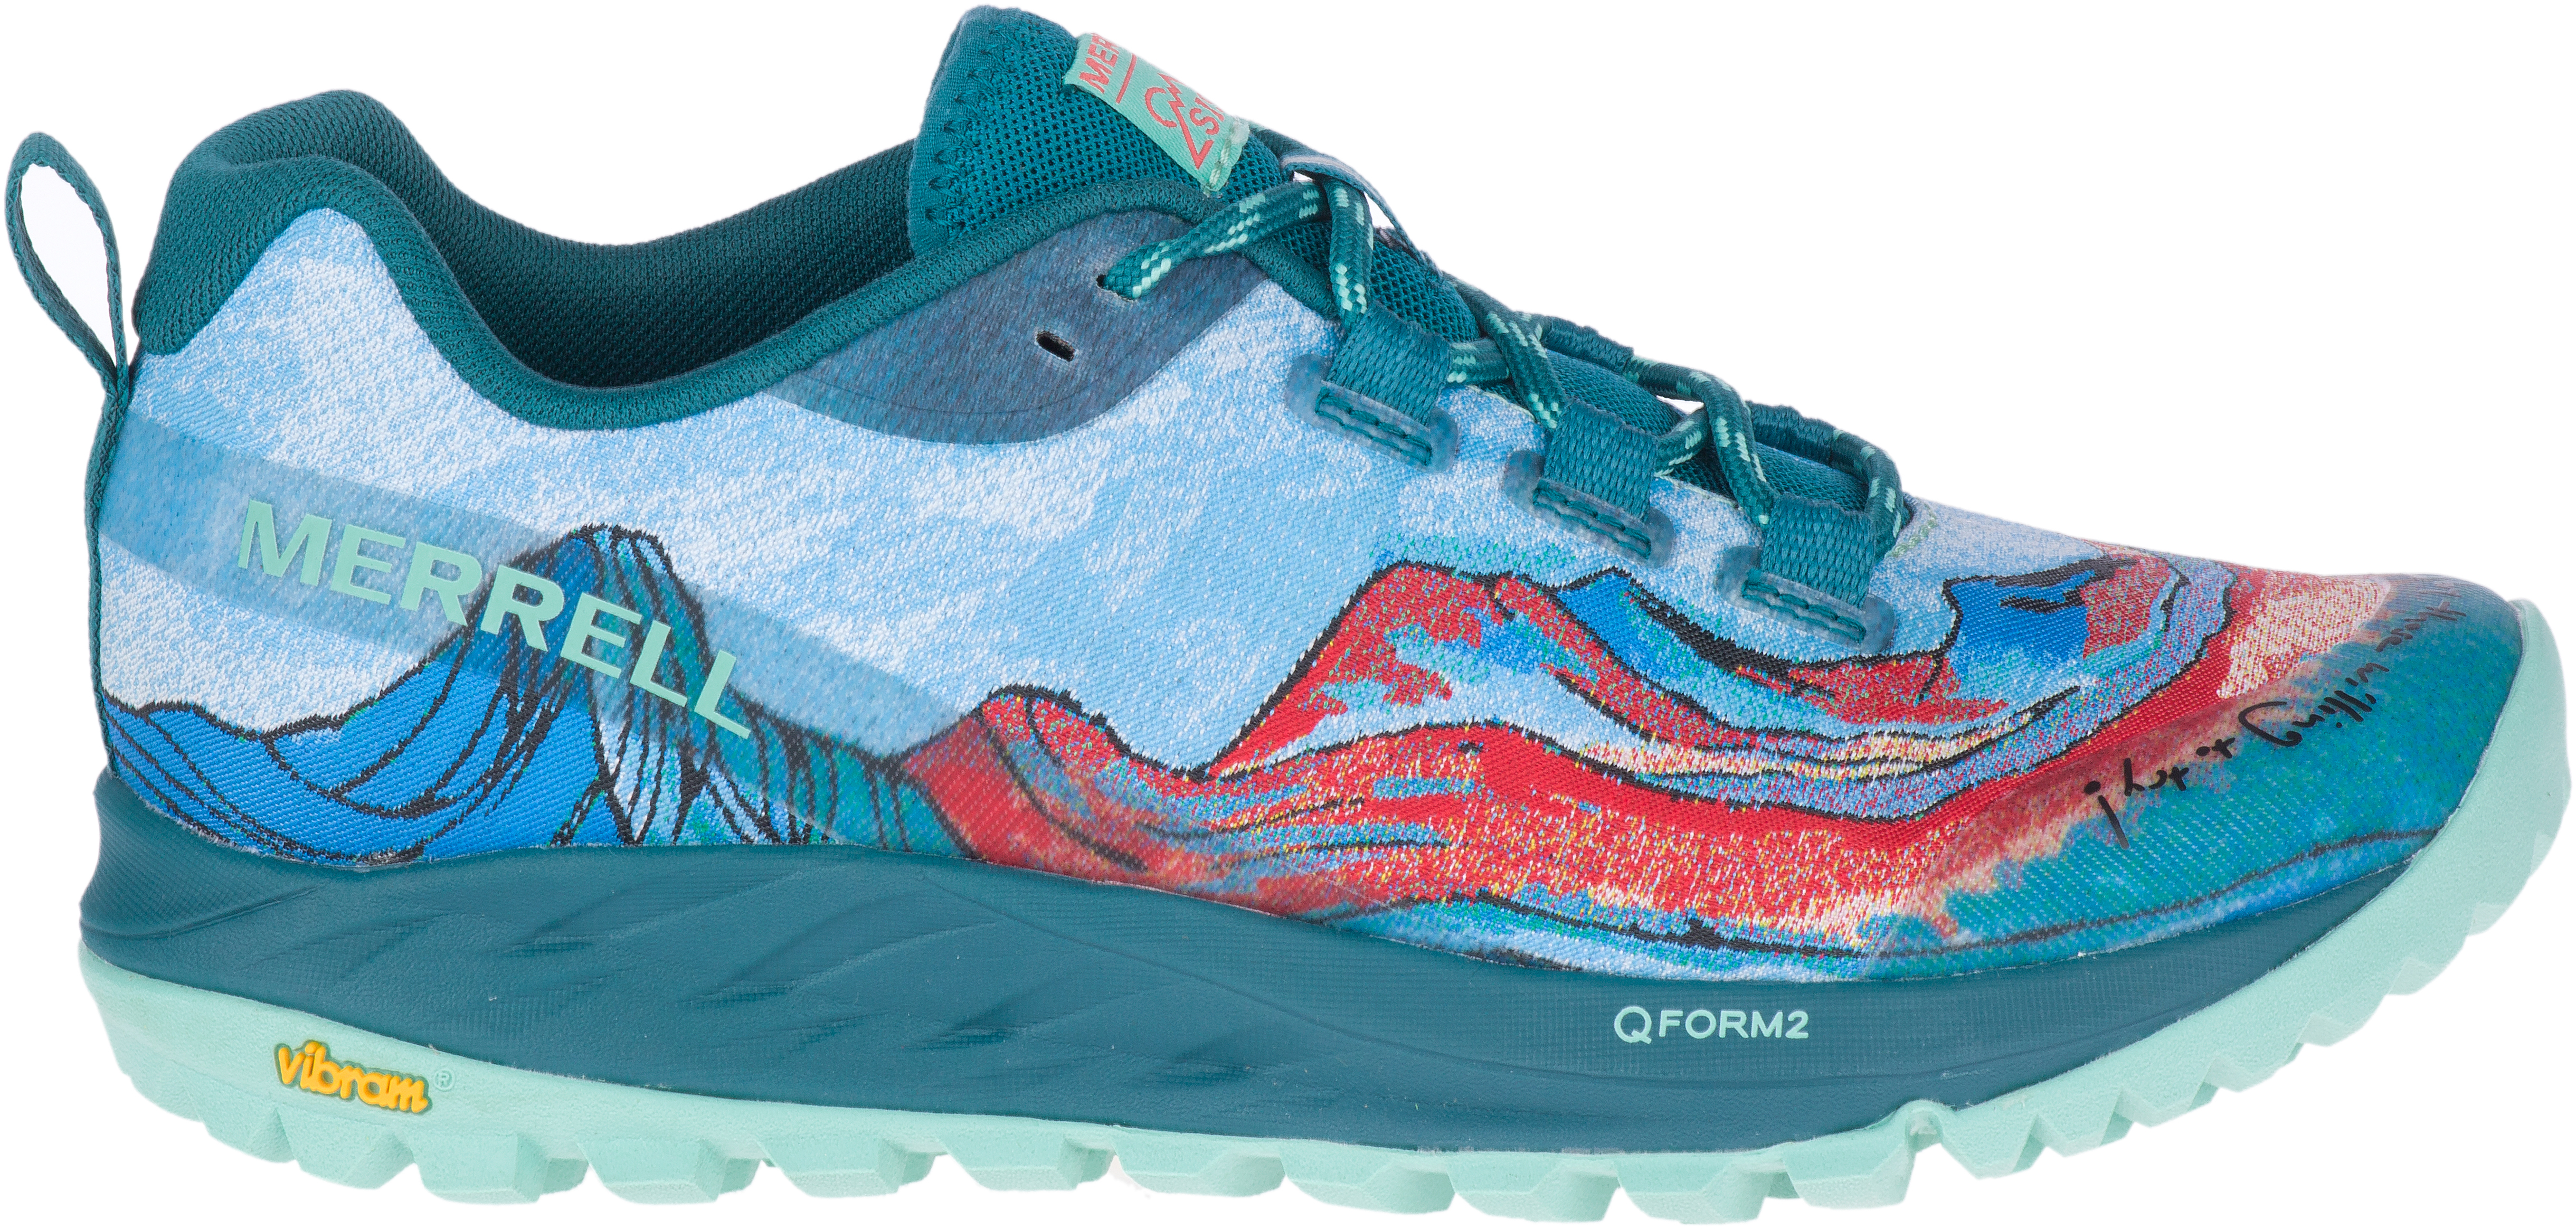 Merrell's New Artist Designed Trail Shoes Have a Mission